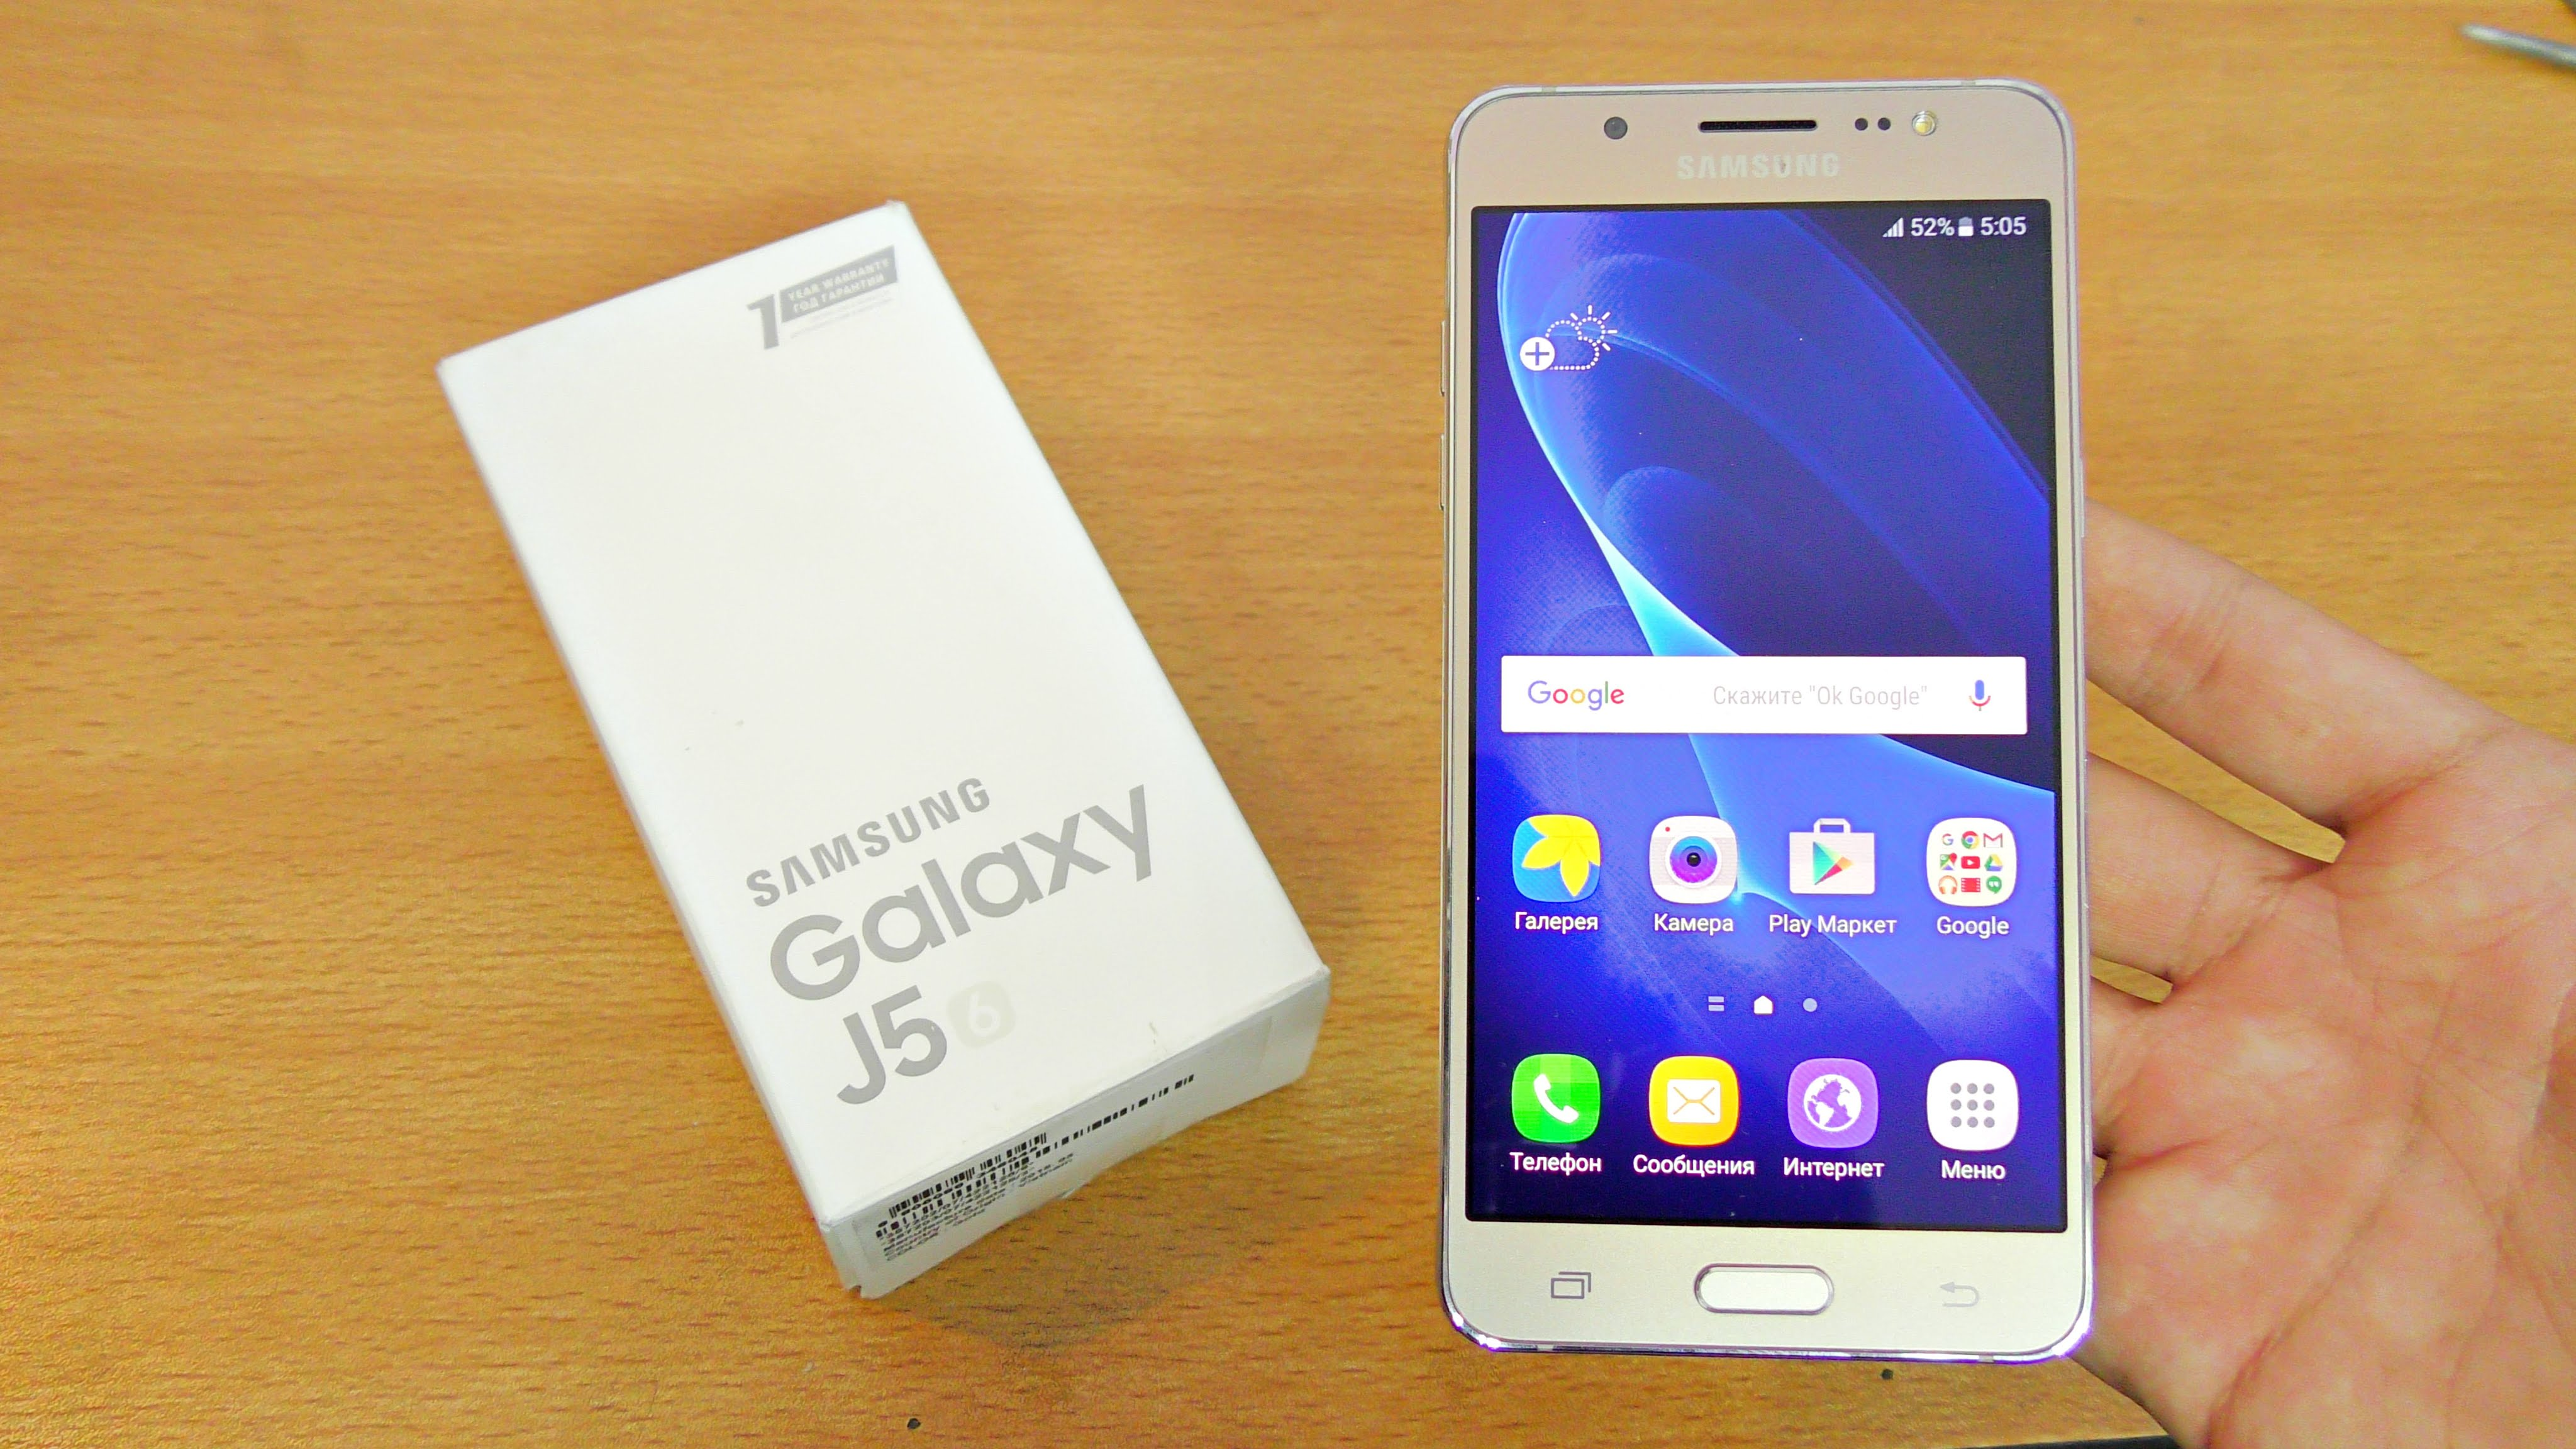 Xiaomi Redmi Note 3 Vs Samsung Galaxy J5 2016 Cual Me